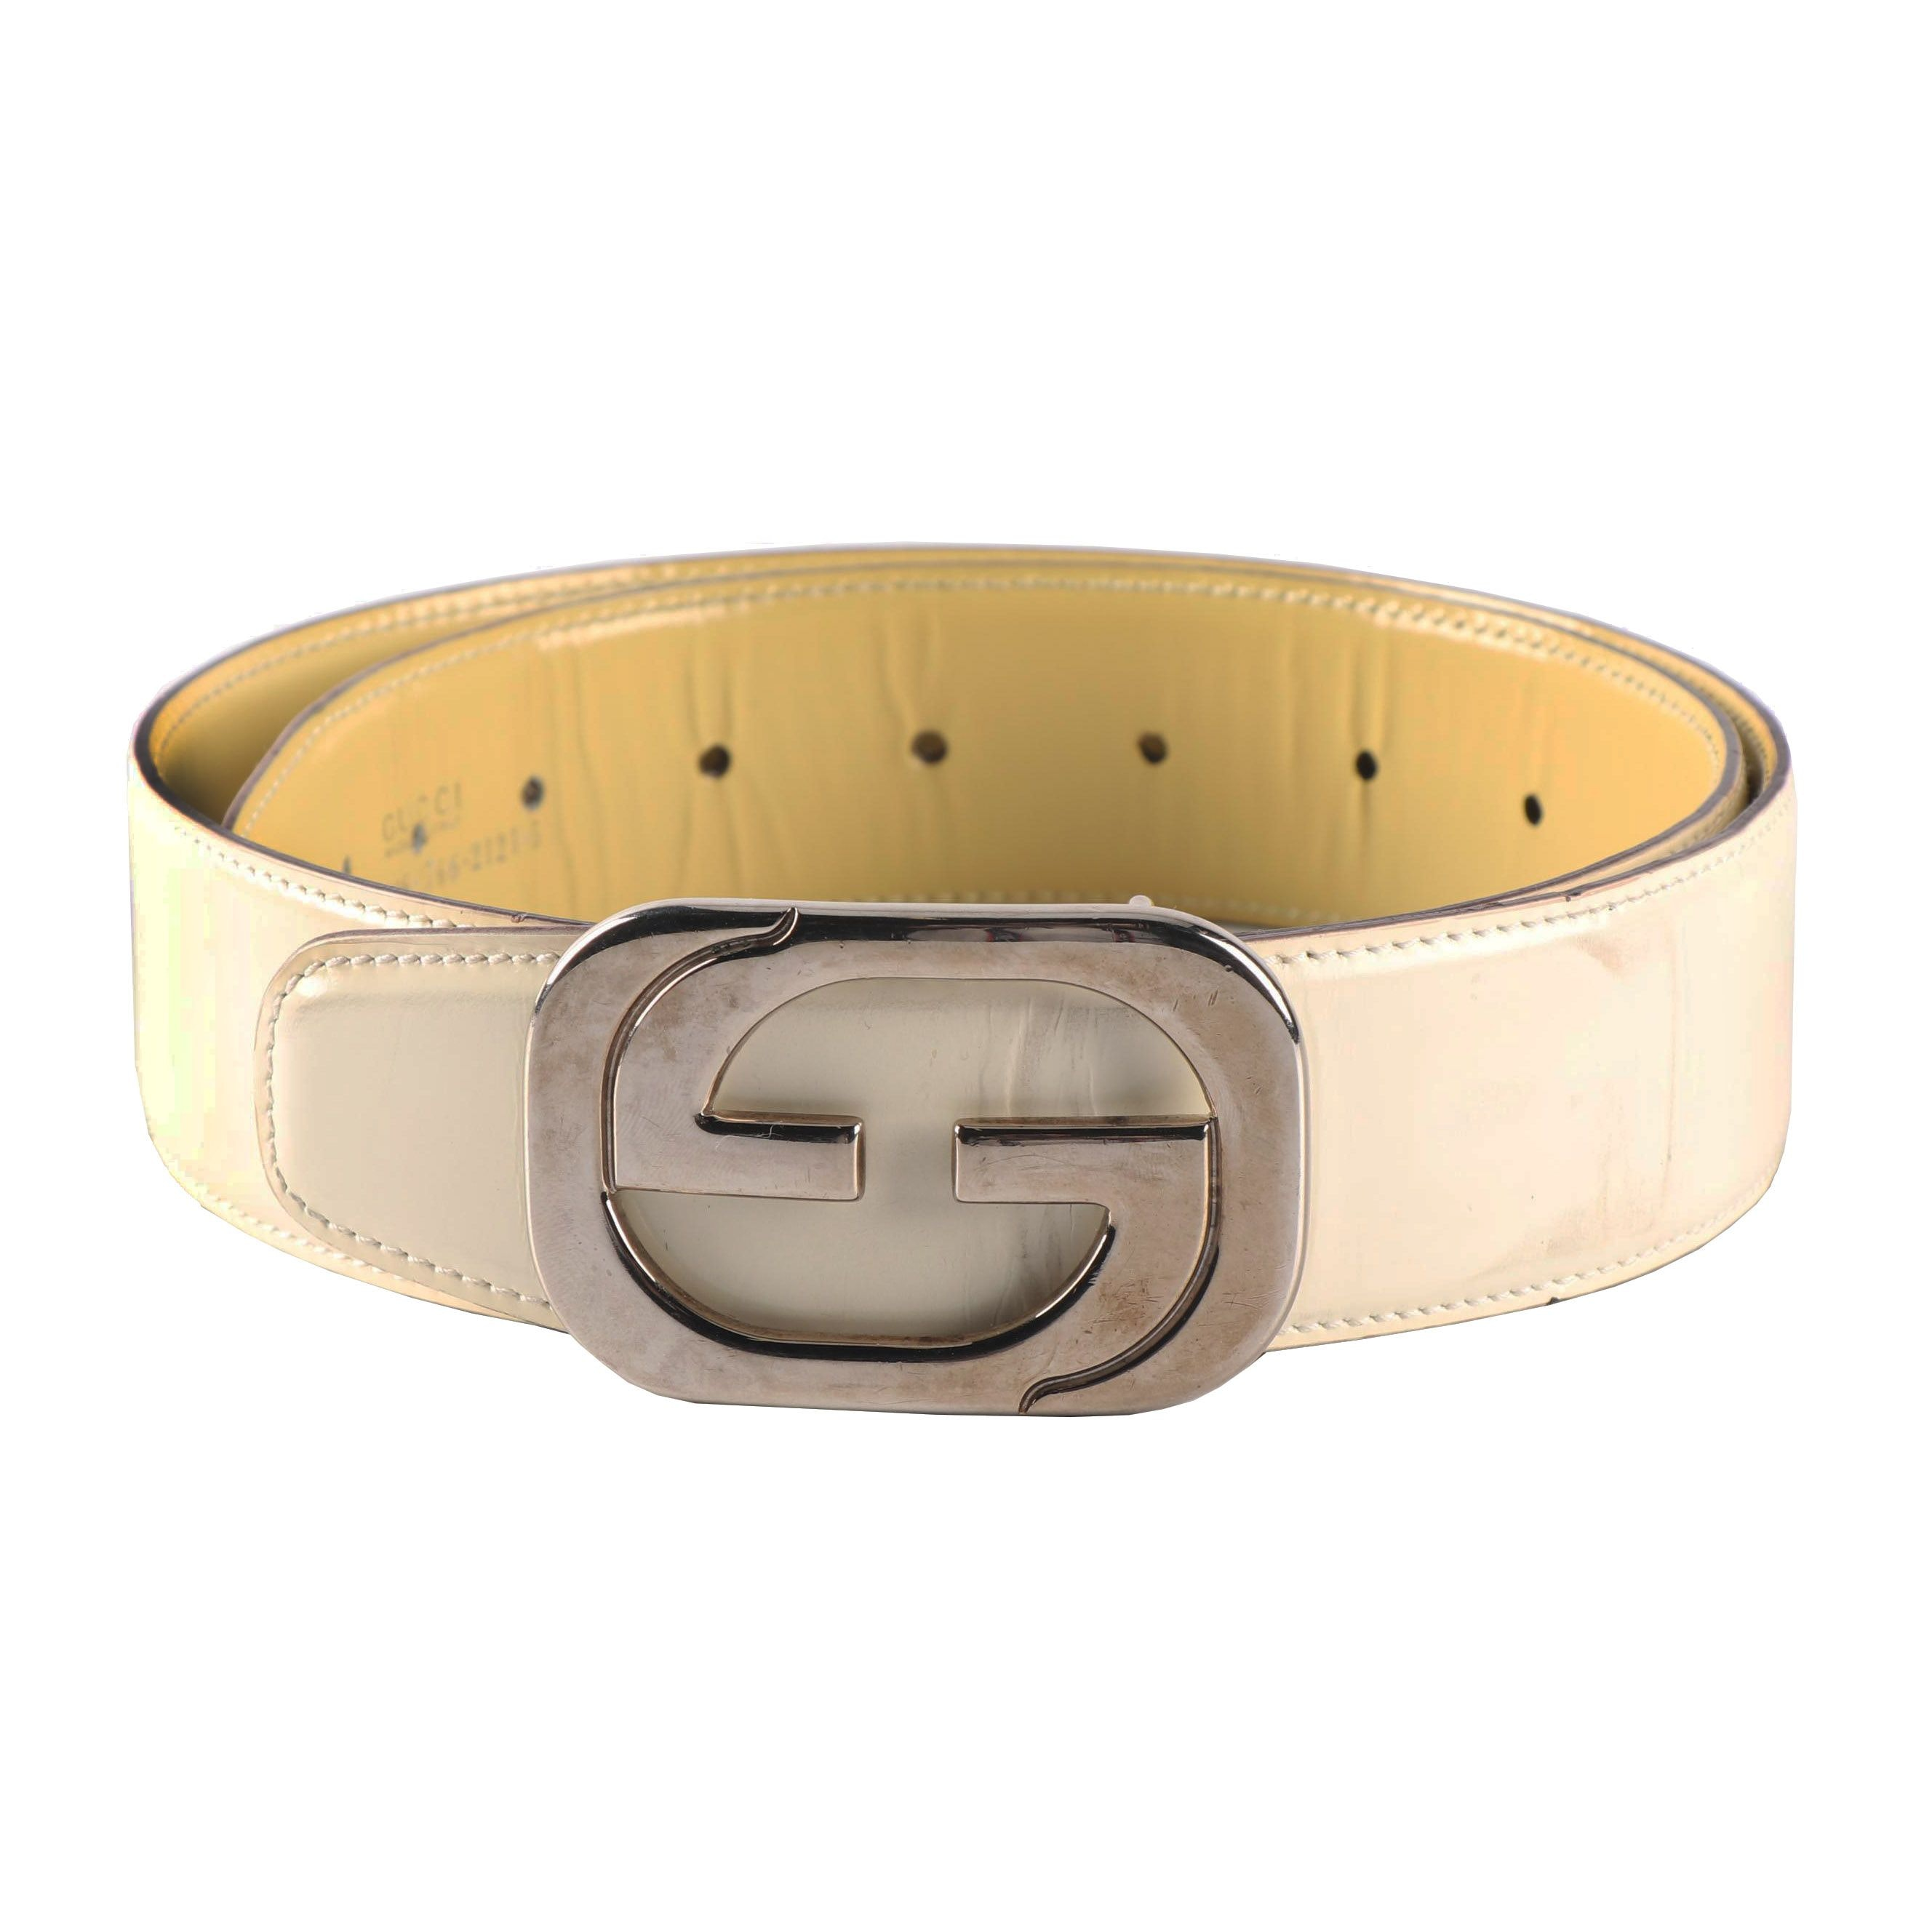 Gucci Off-White Leather Belt featuring GG Interlocking Silver Tone Buckle